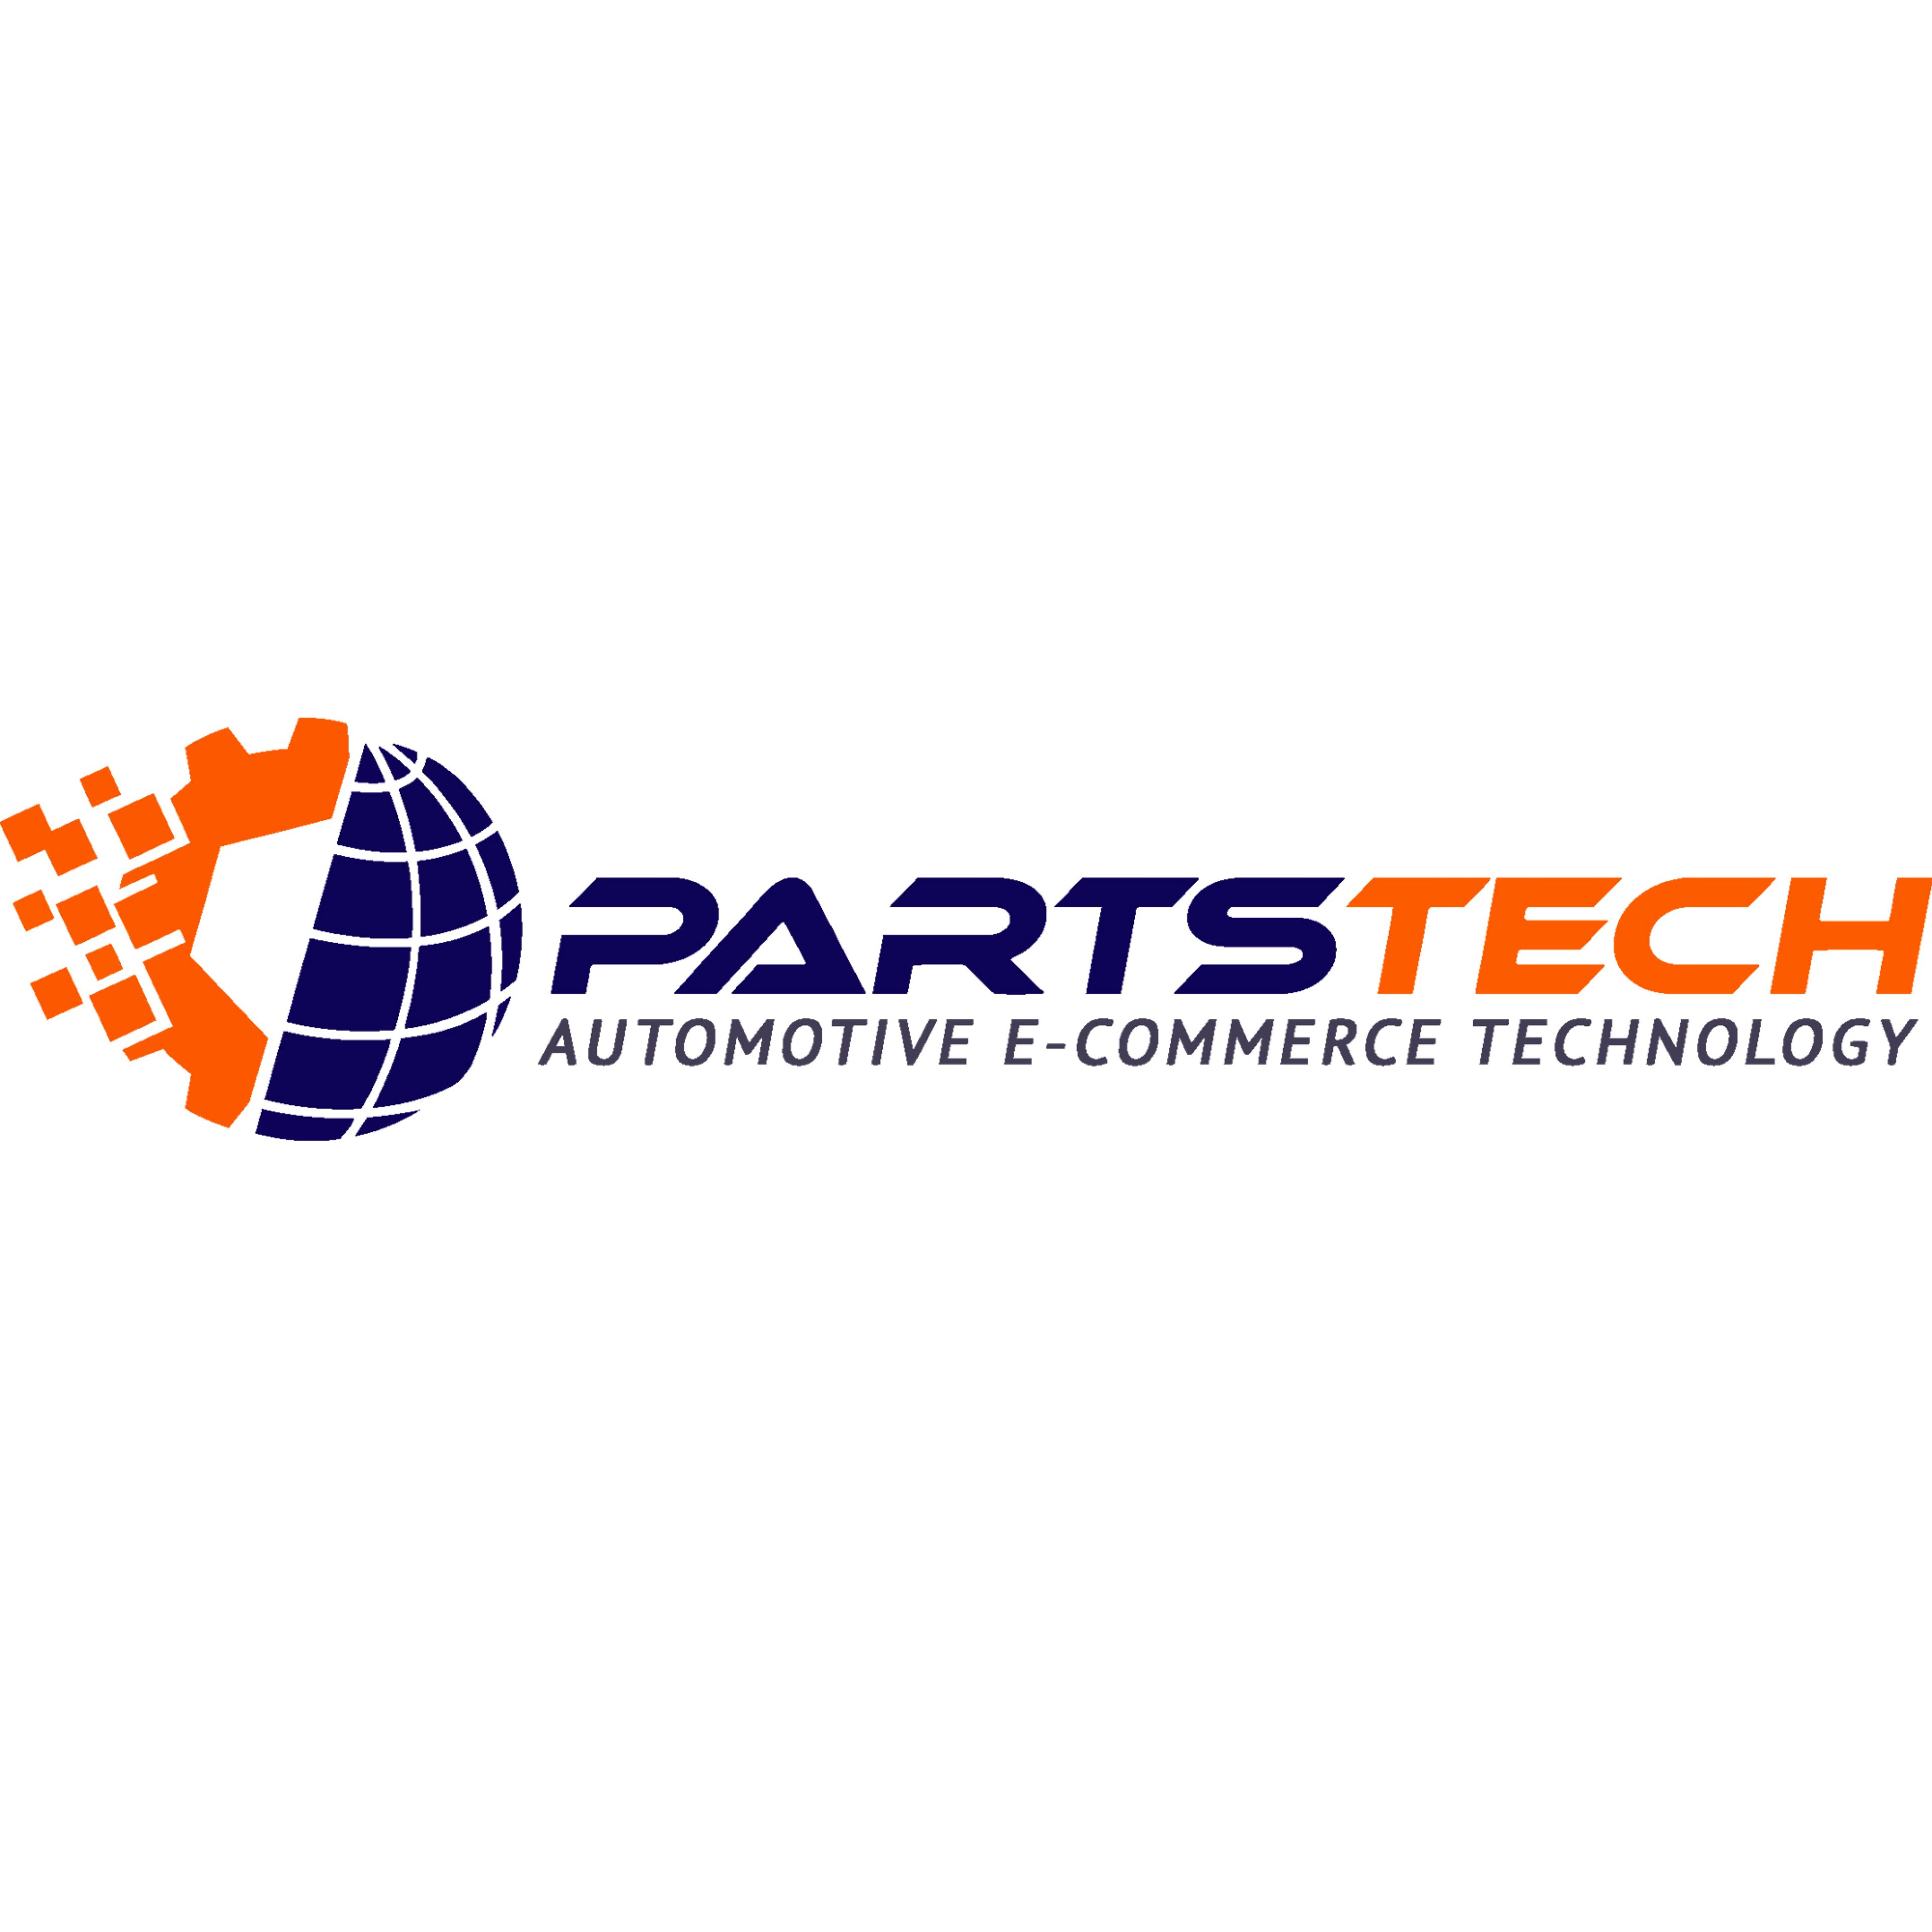 BP Ventures invests in PartsTech